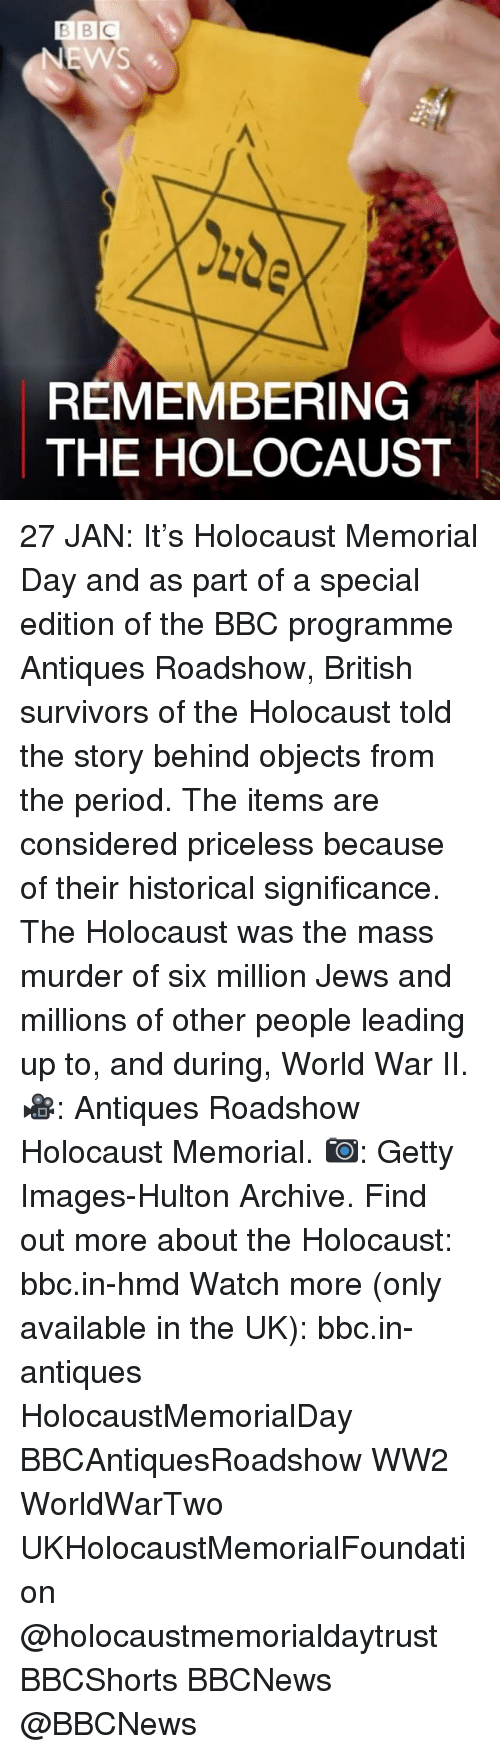 Memes, Survivor, and Bbc News: BBC  NEWS  REMEMBERING  THE HOLOCAUST 27 JAN: It's Holocaust Memorial Day and as part of a special edition of the BBC programme Antiques Roadshow, British survivors of the Holocaust told the story behind objects from the period. The items are considered priceless because of their historical significance. The Holocaust was the mass murder of six million Jews and millions of other people leading up to, and during, World War II. 🎥: Antiques Roadshow Holocaust Memorial. 📷: Getty Images-Hulton Archive. Find out more about the Holocaust: bbc.in-hmd Watch more (only available in the UK): bbc.in-antiques HolocaustMemorialDay BBCAntiquesRoadshow WW2 WorldWarTwo UKHolocaustMemorialFoundation @holocaustmemorialdaytrust BBCShorts BBCNews @BBCNews